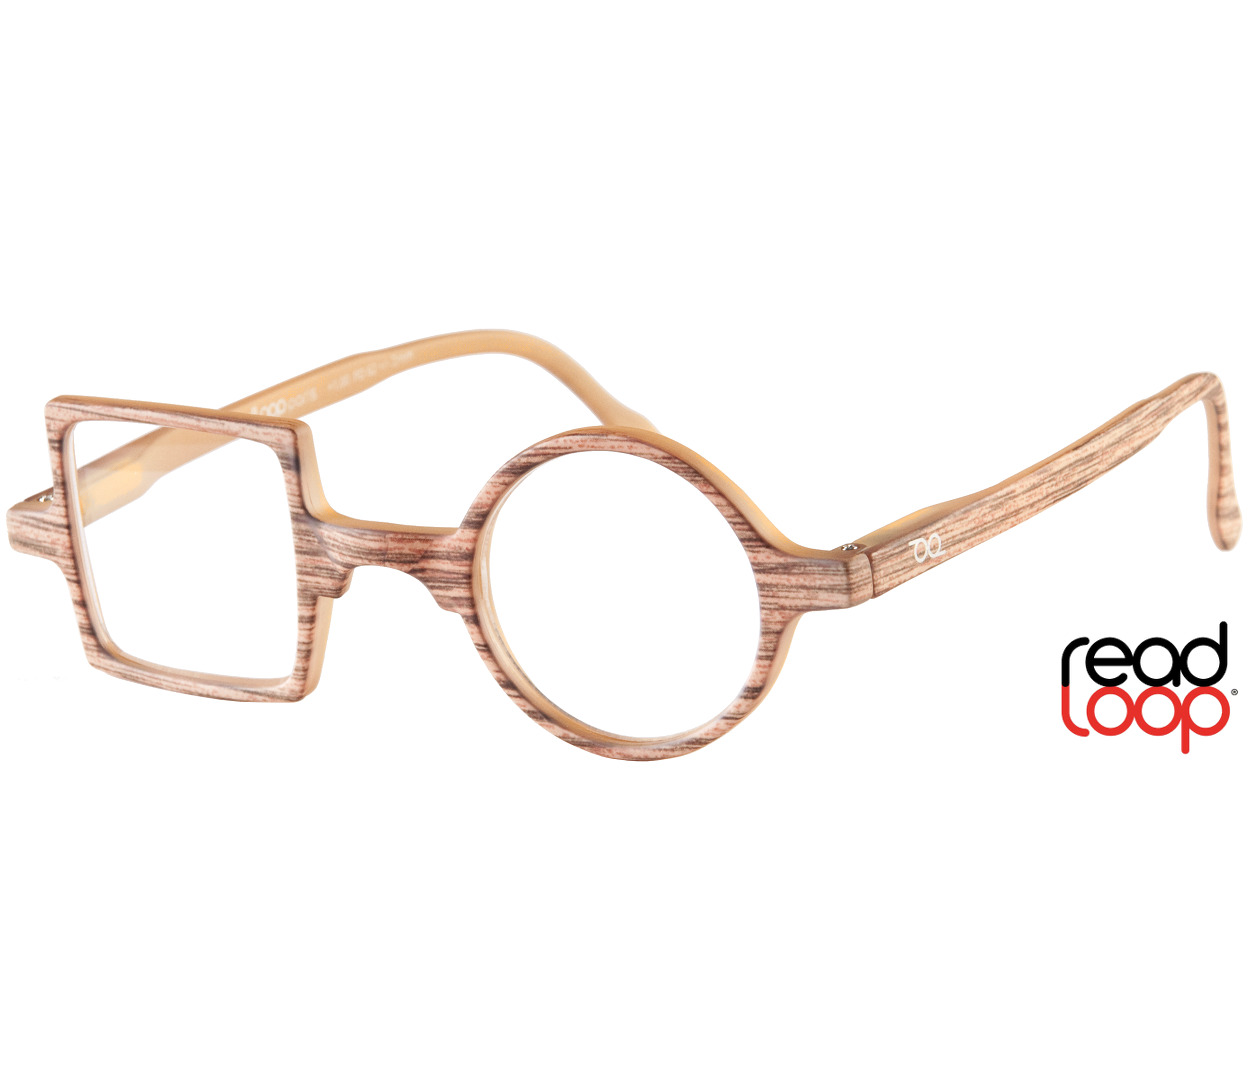 Main Image (Angle) - Patchwork (Wood Effect) Retro Reading Glasses